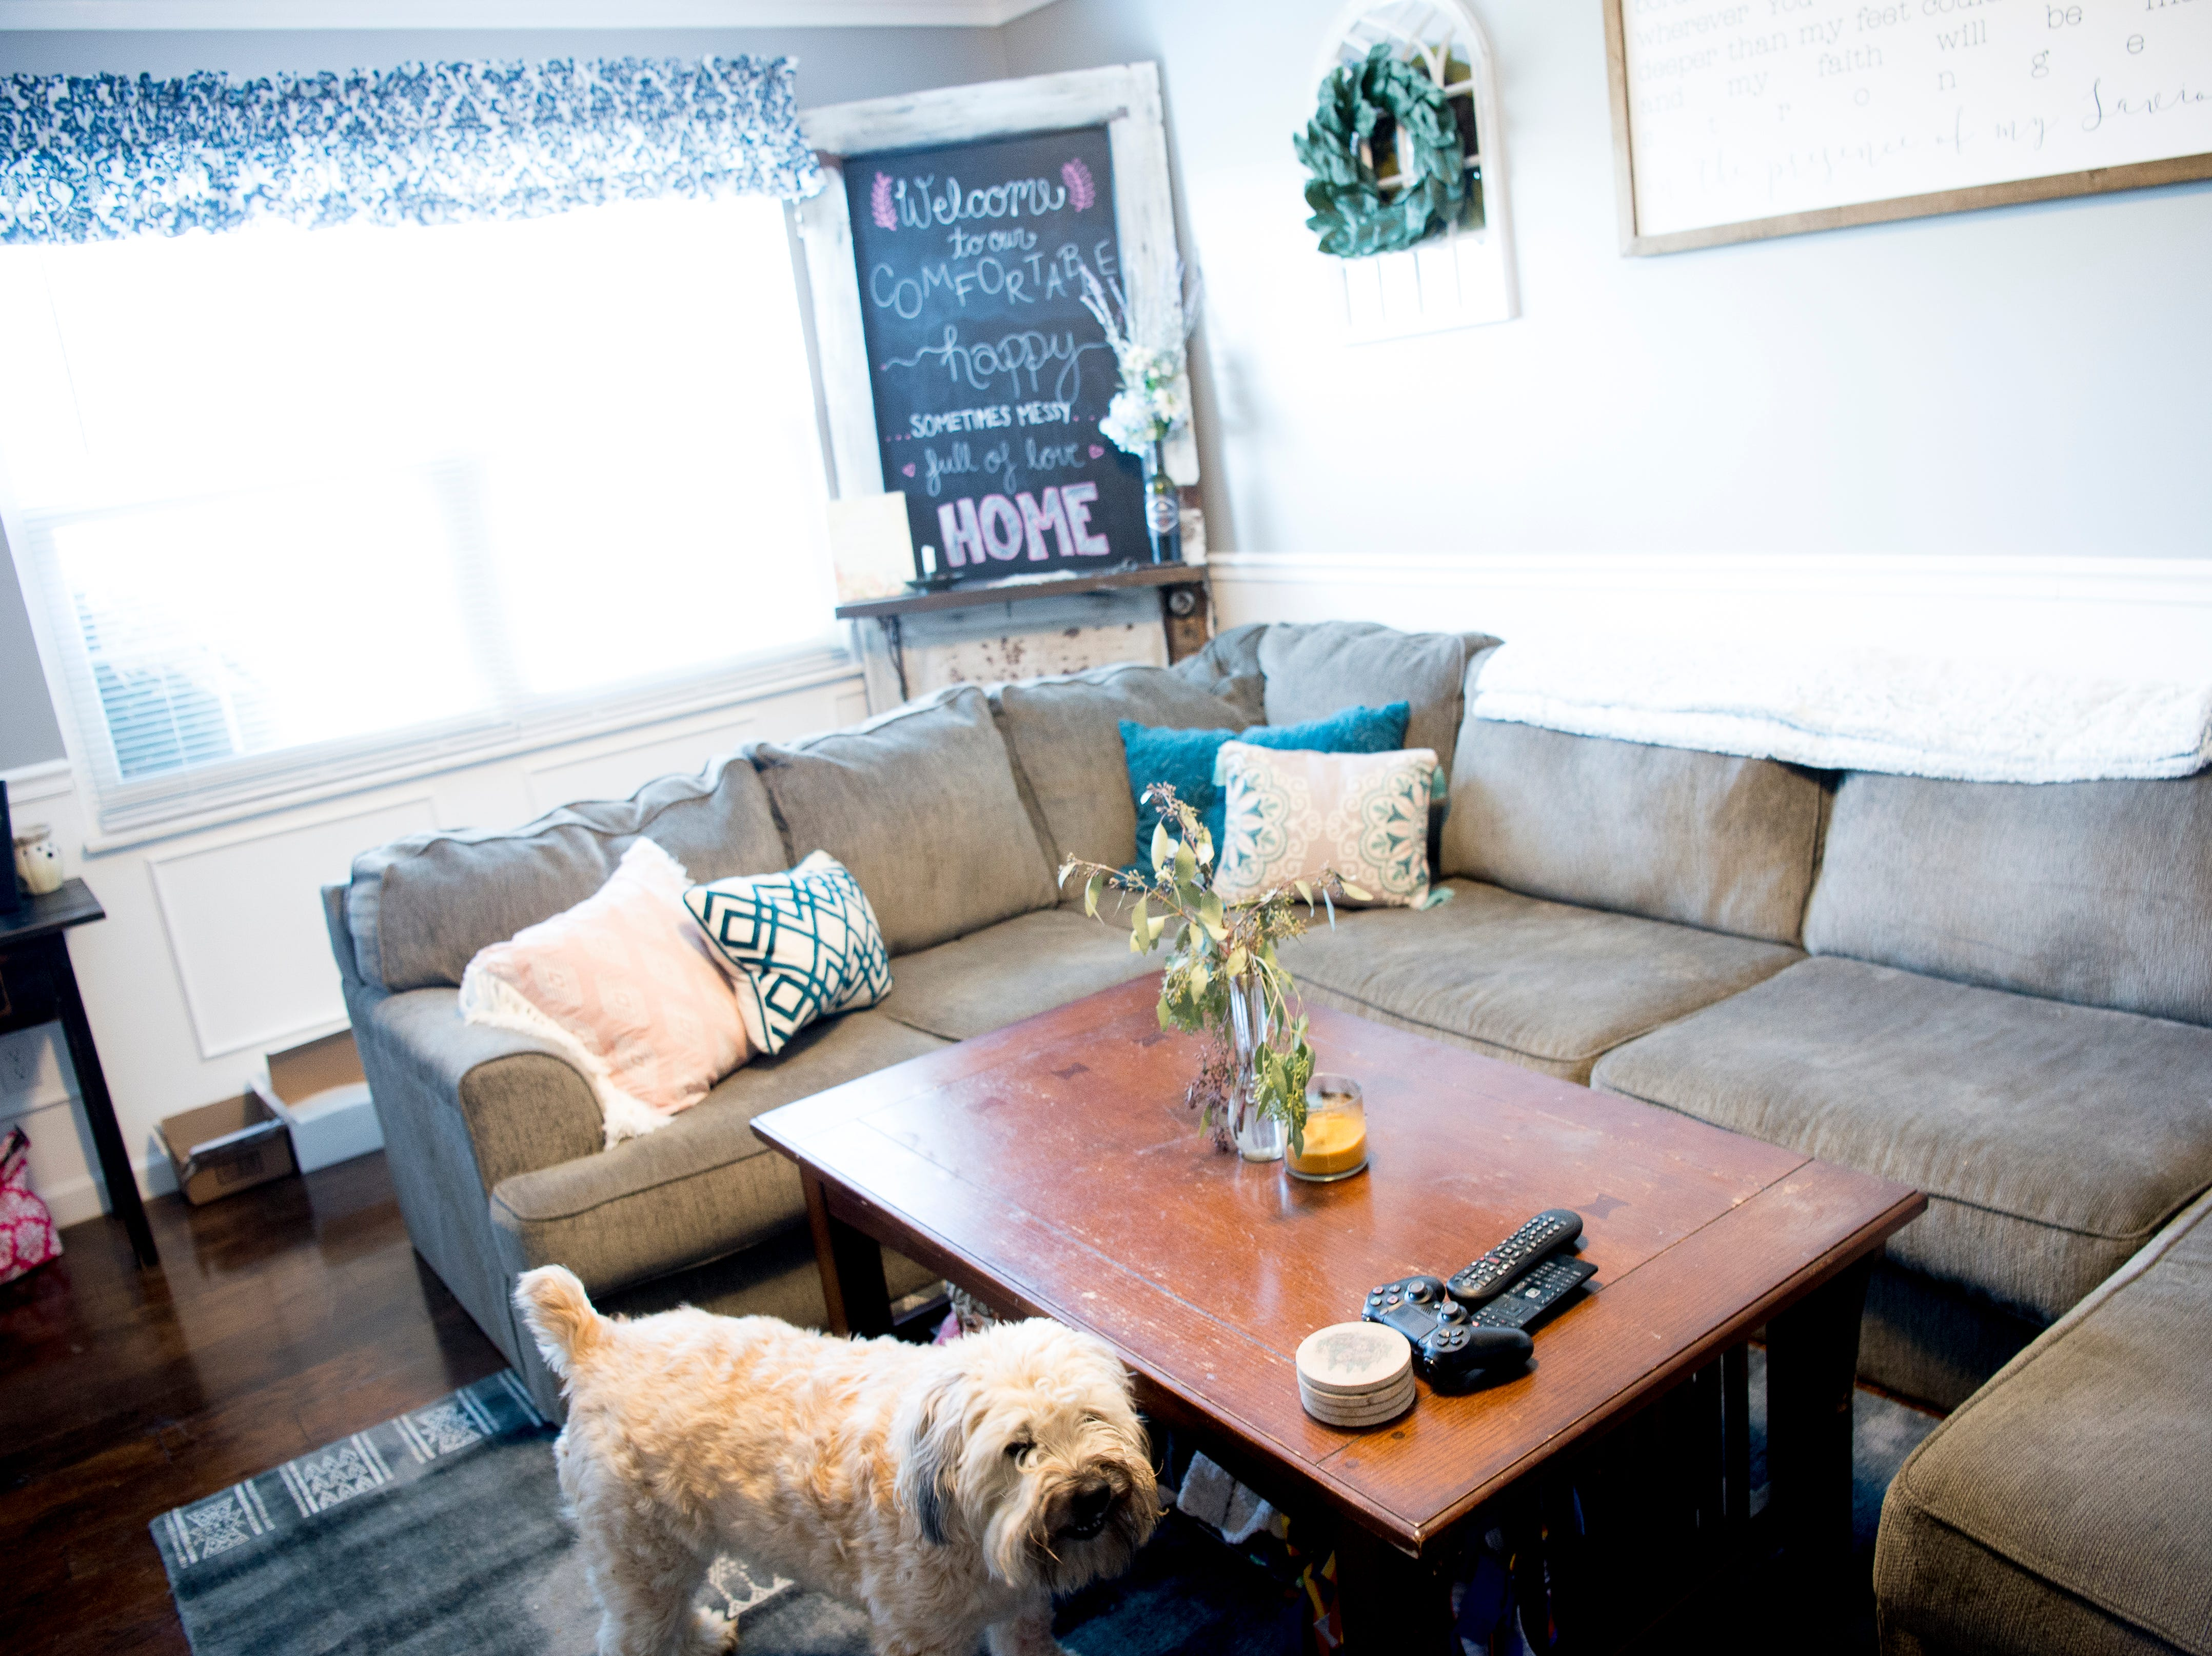 The living room of Miller and Gurney's home off McKamey Road west of Knoxville, Tennessee on Wednesday, April 3, 2019. After months of house searching, the couple decided to move into their current home last December after making some small compromises like being further away from downtown.